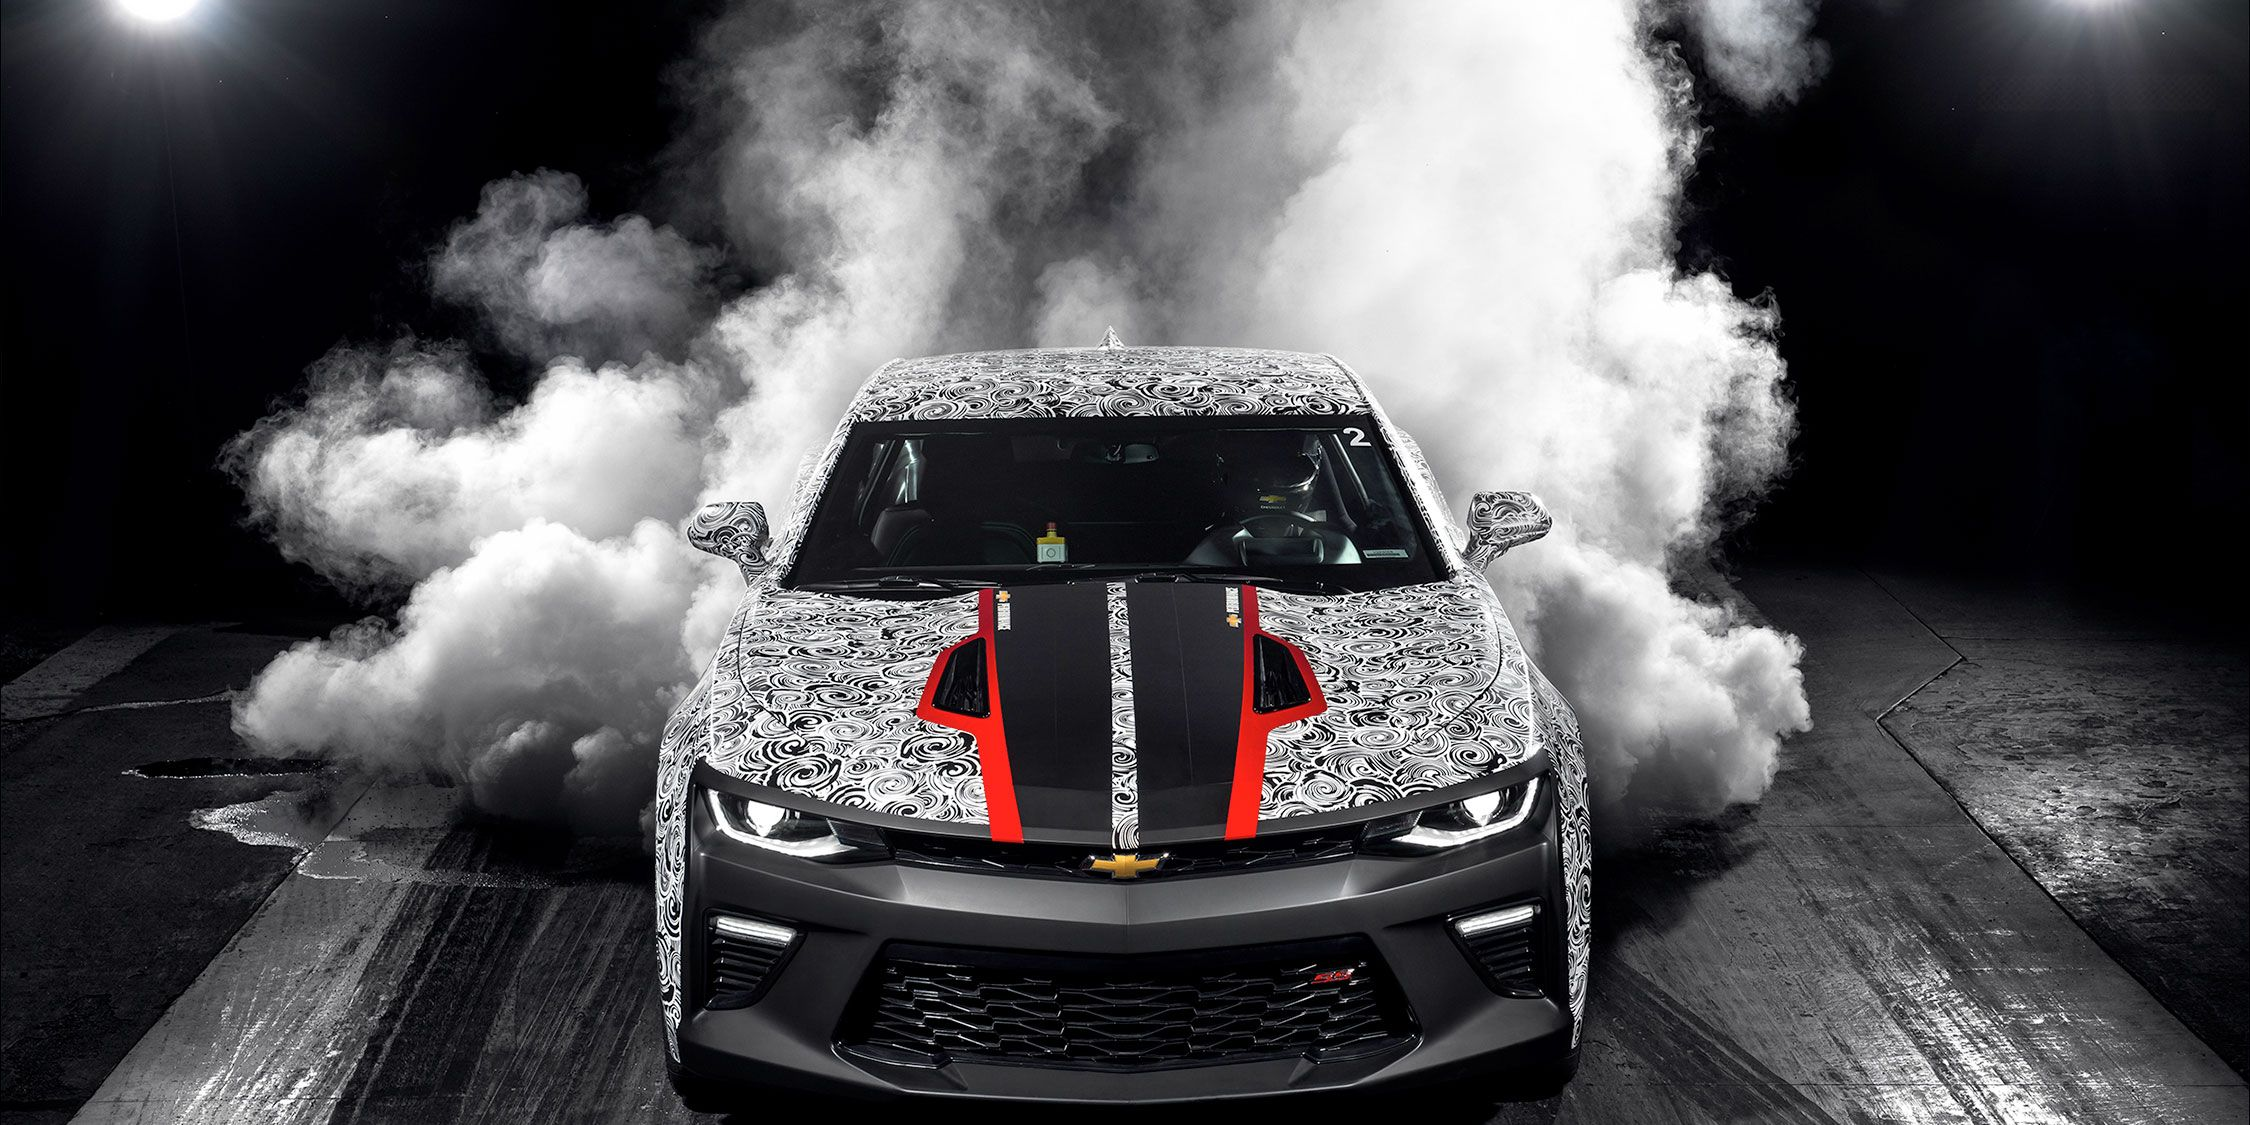 Chevrolet Is Trying to Make the Camaro SS a 10-Second Car with Factory Parts